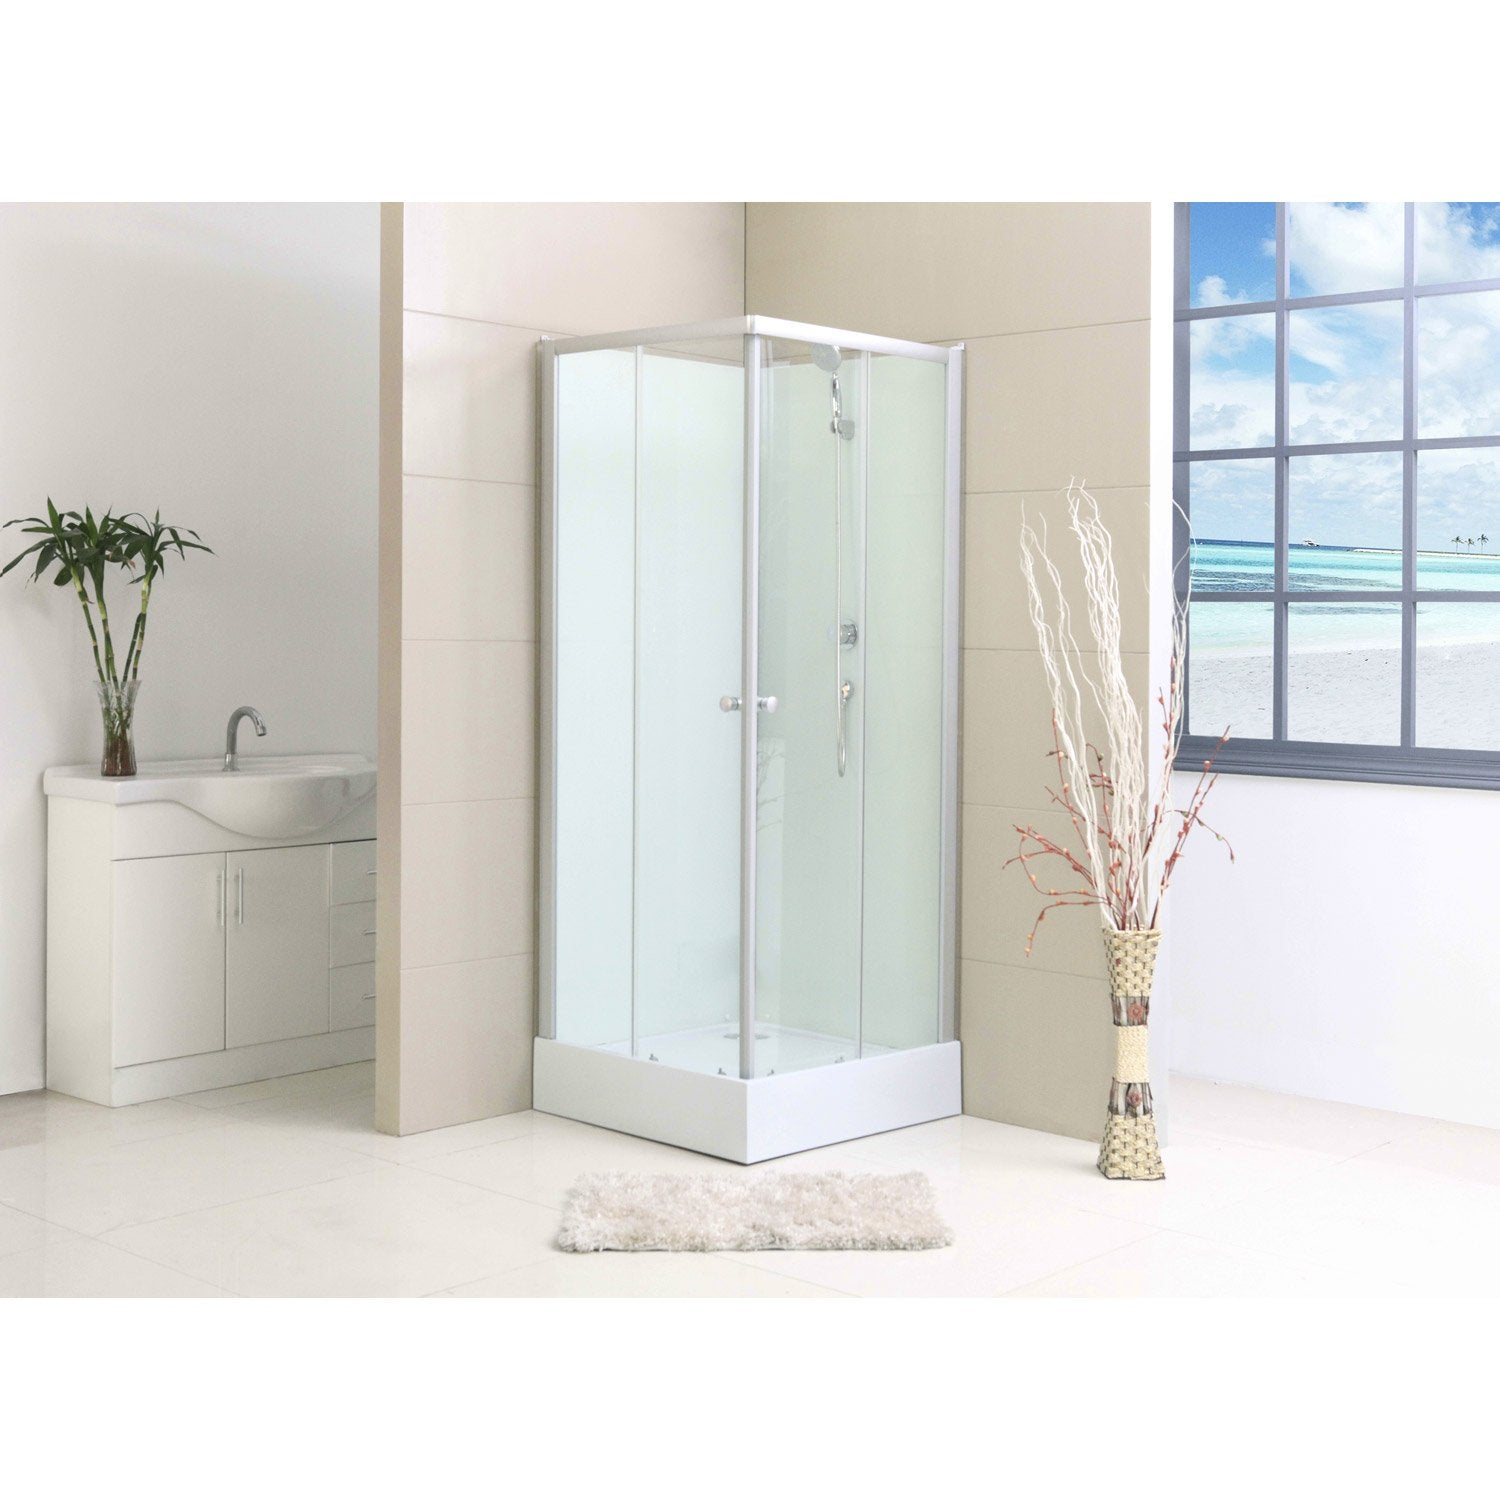 Cabine de douche nerea2 simple mitigeur carr 80x80 cm for Leroy merlin colonne de douche